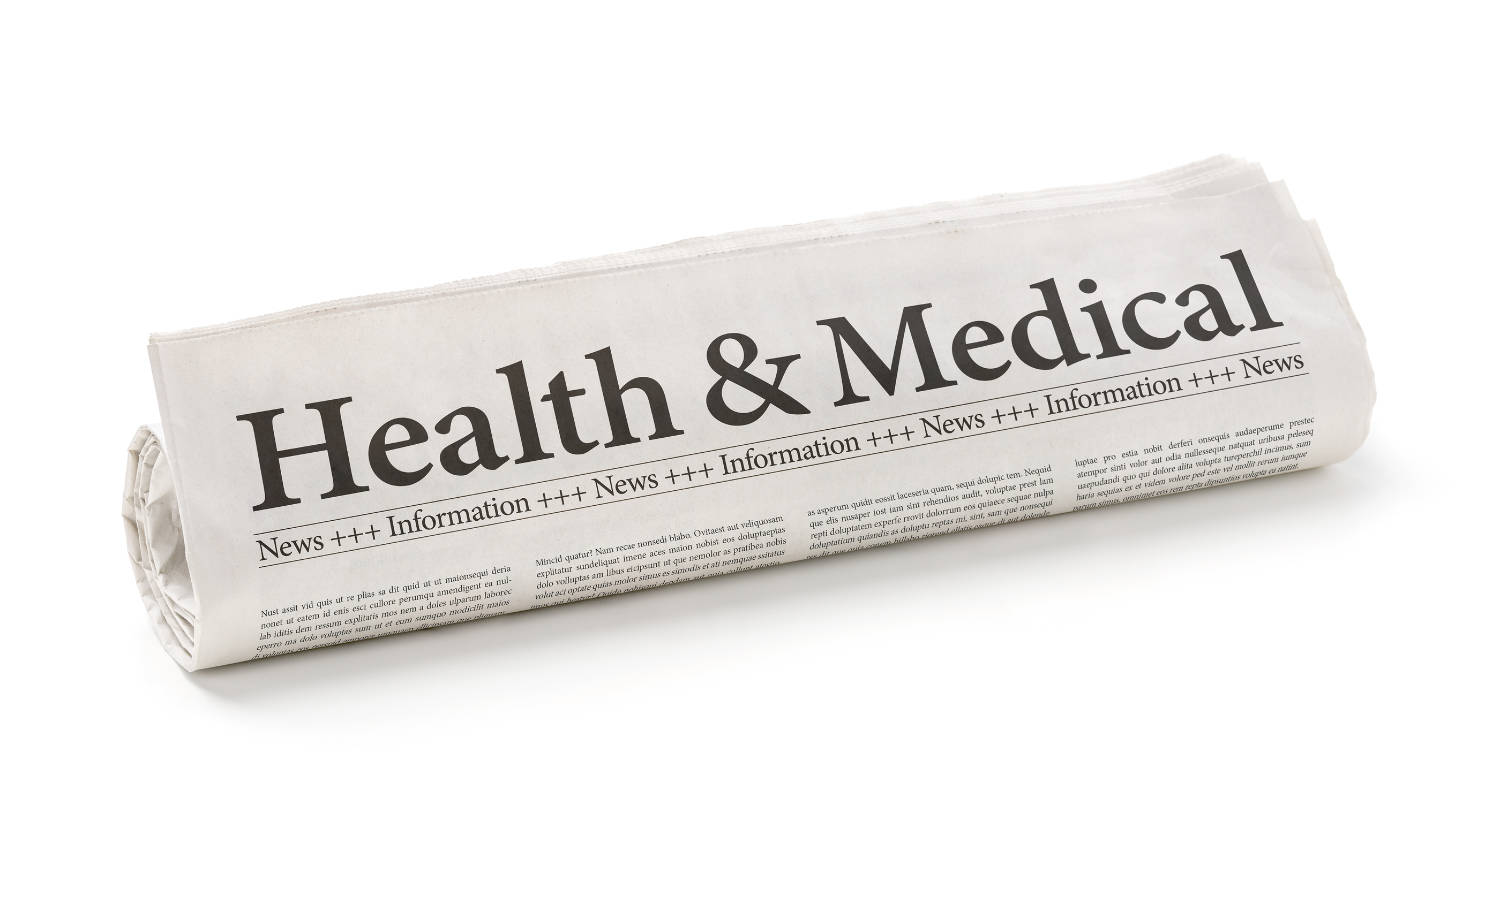 Newspaper With The Headline Health And Medical